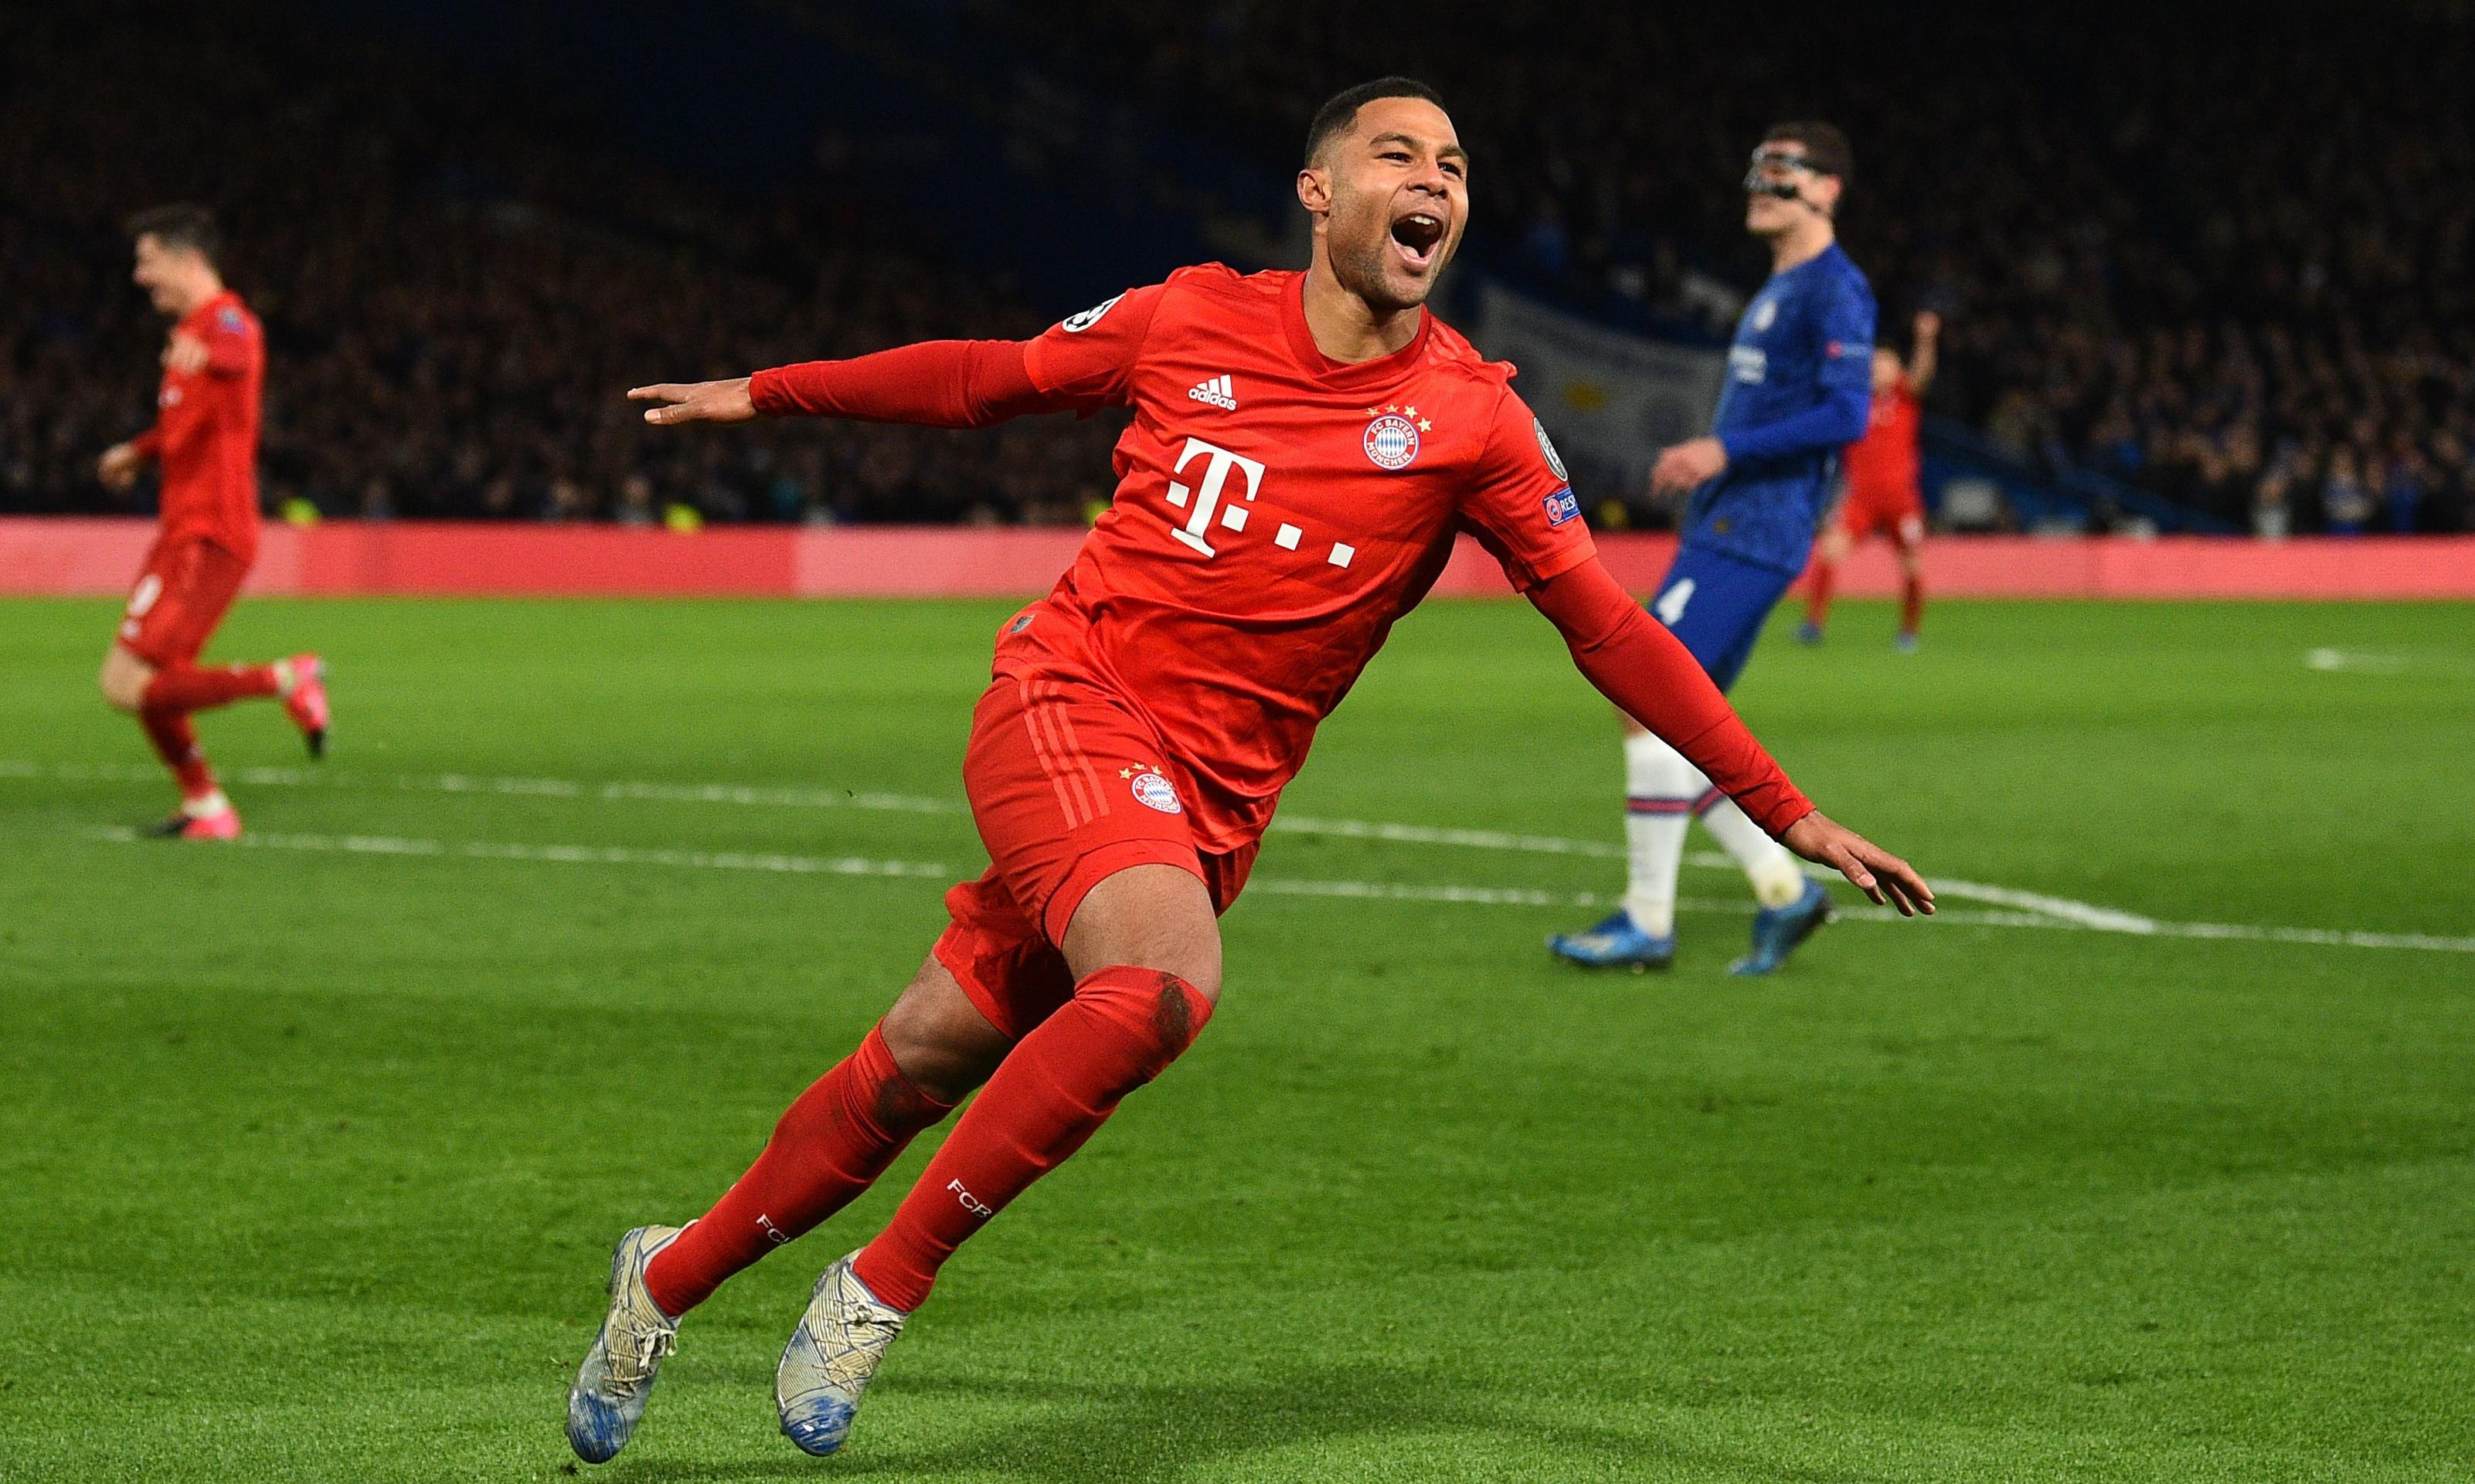 Bayern Munich and Gnabry drive Chelsea towards Champions League exit